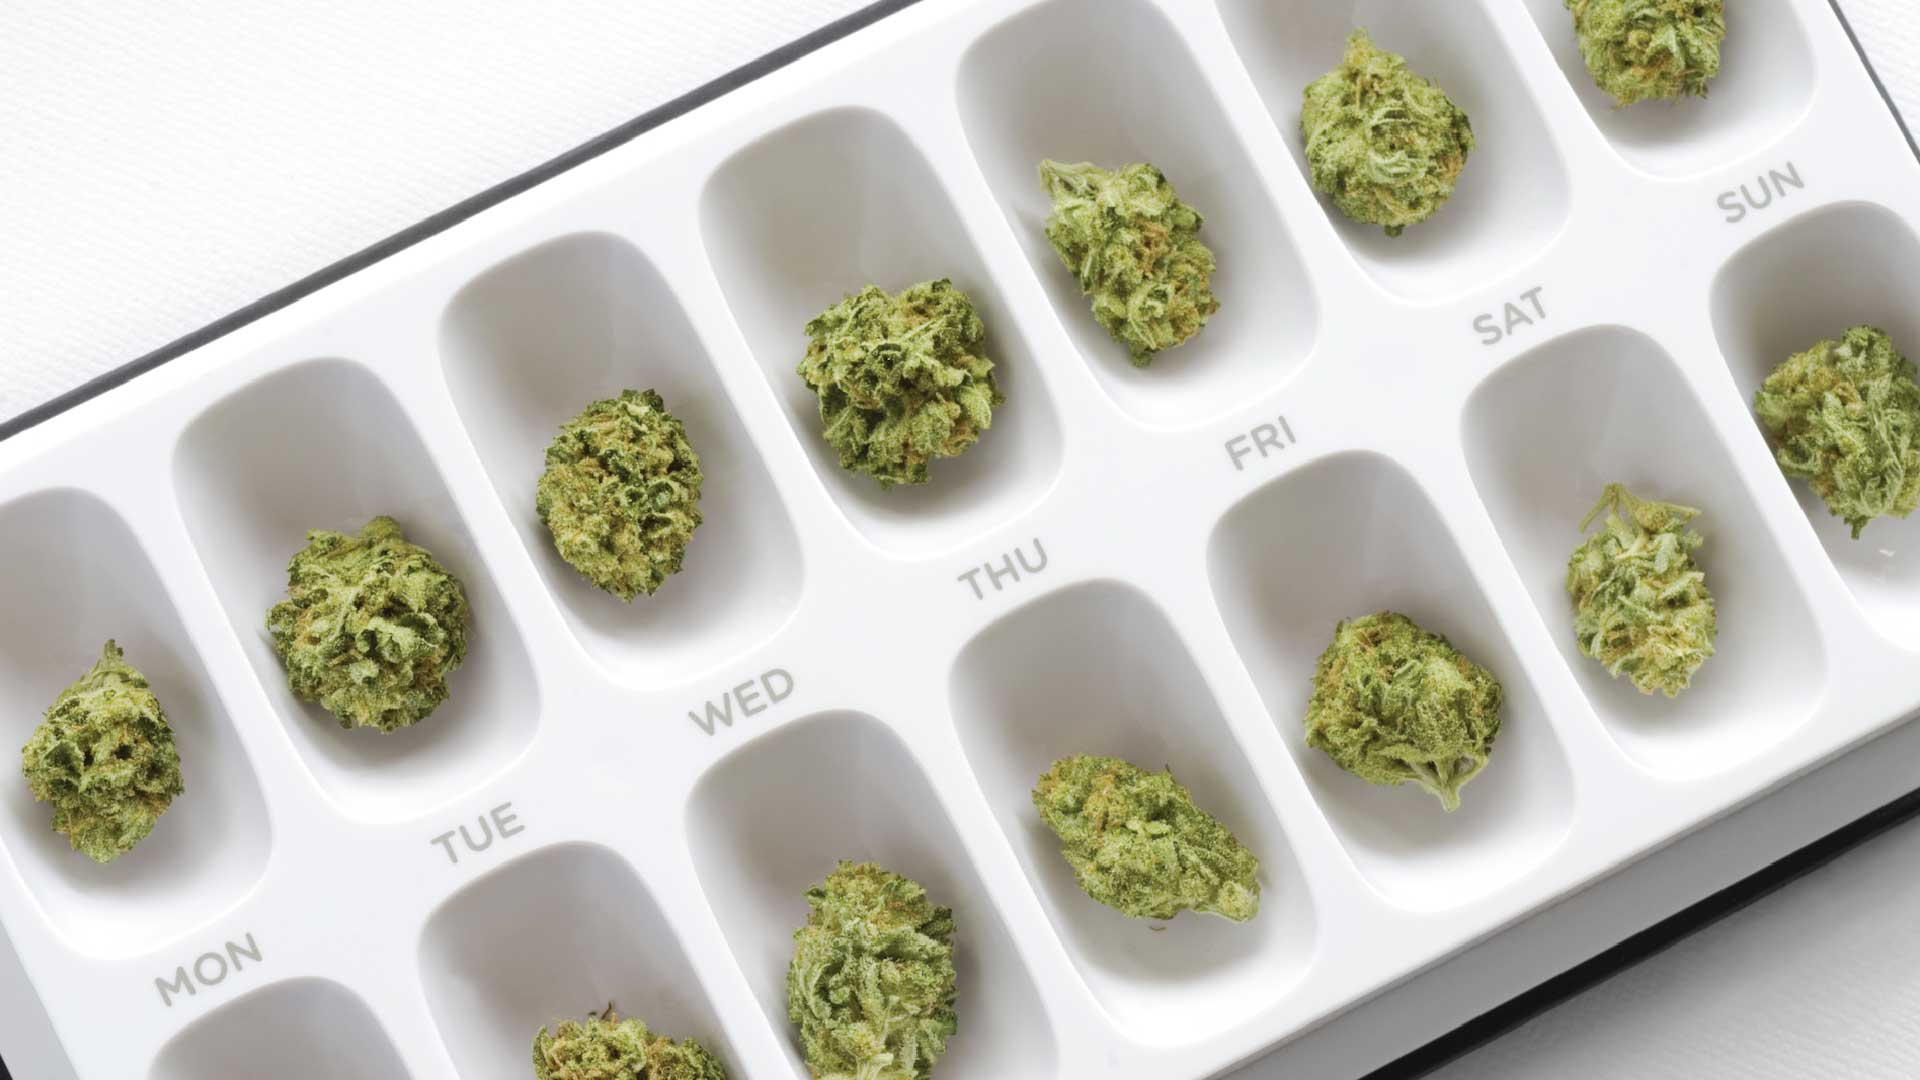 Marijuana and Microdosing: Get the Health, Avoid the High